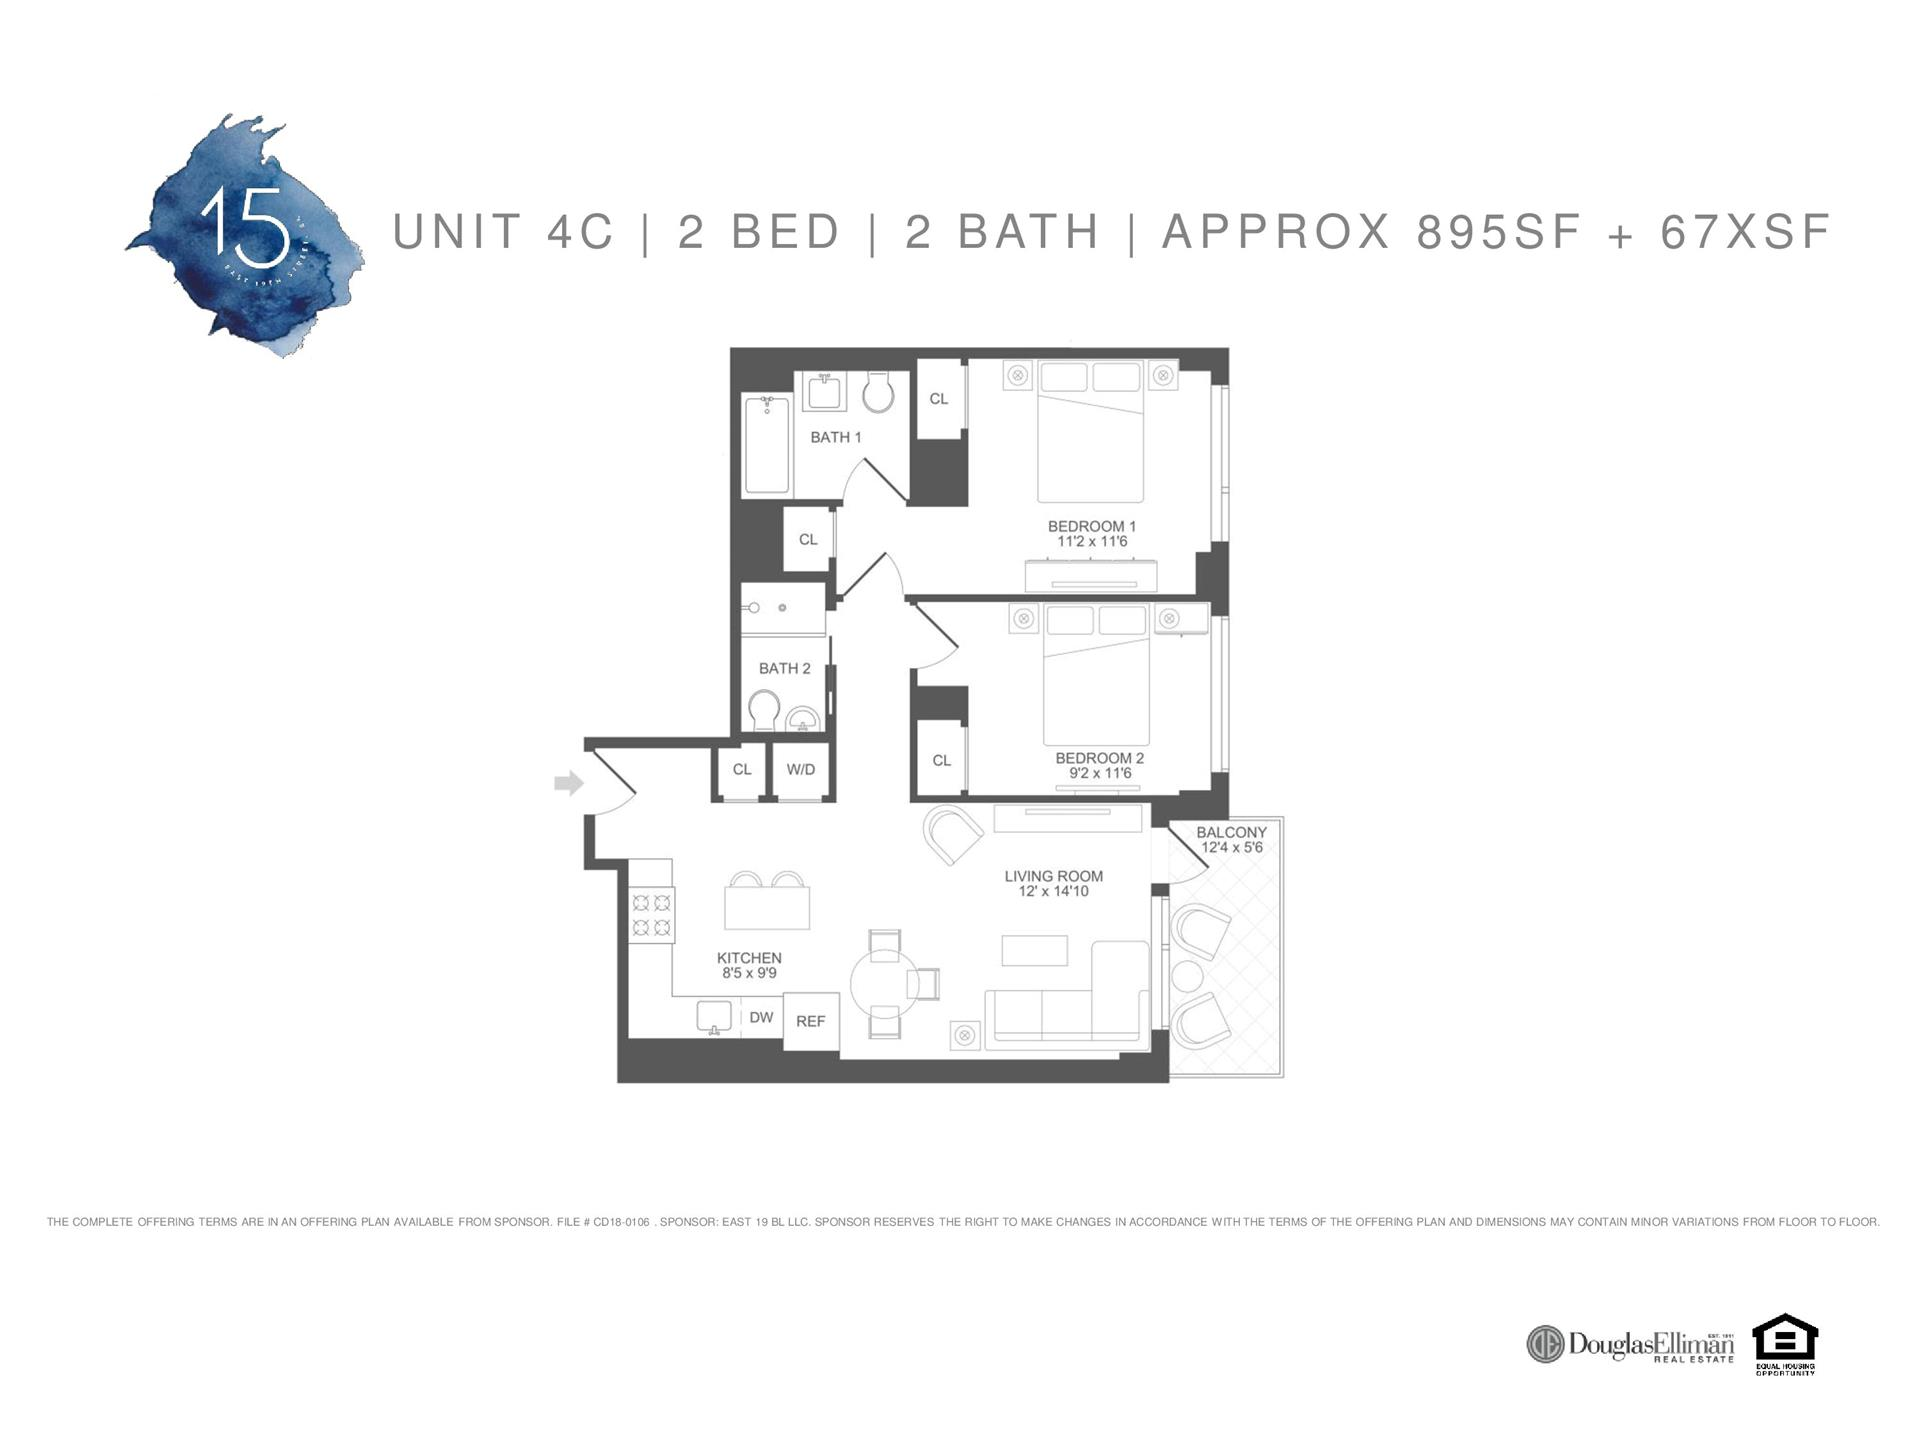 Floor plan of 15 East 19th Street, 4C - Prospect Park South, New York